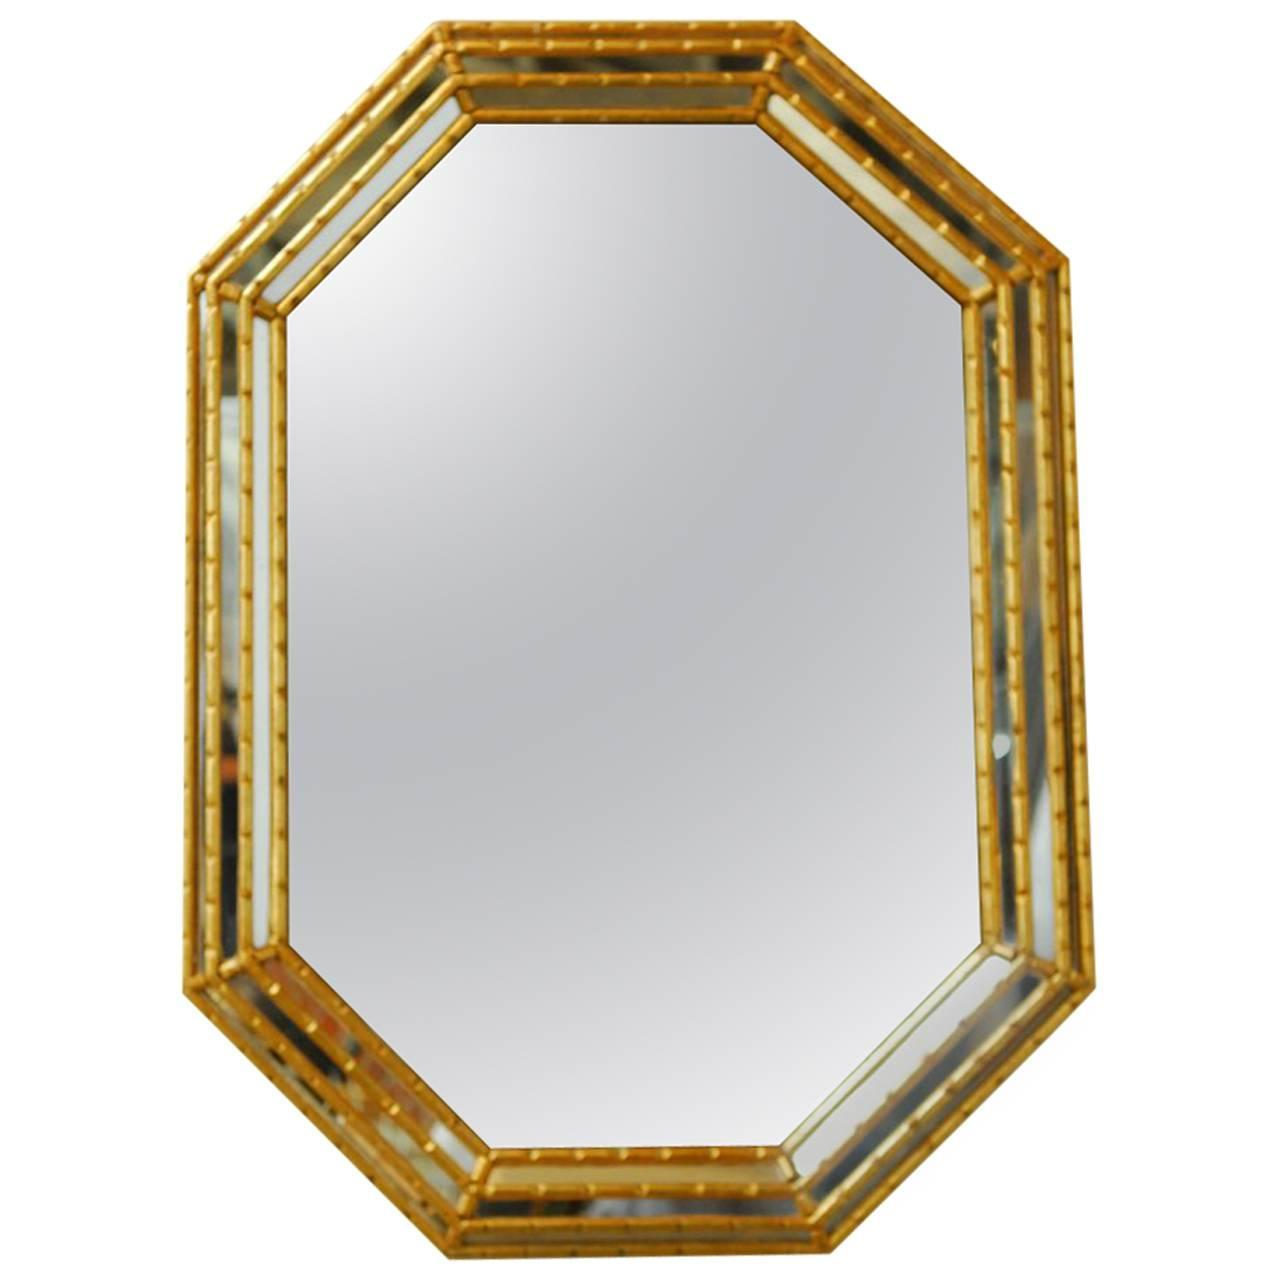 Mid century labarge octagonal faux bamboo mirror at 1stdibs